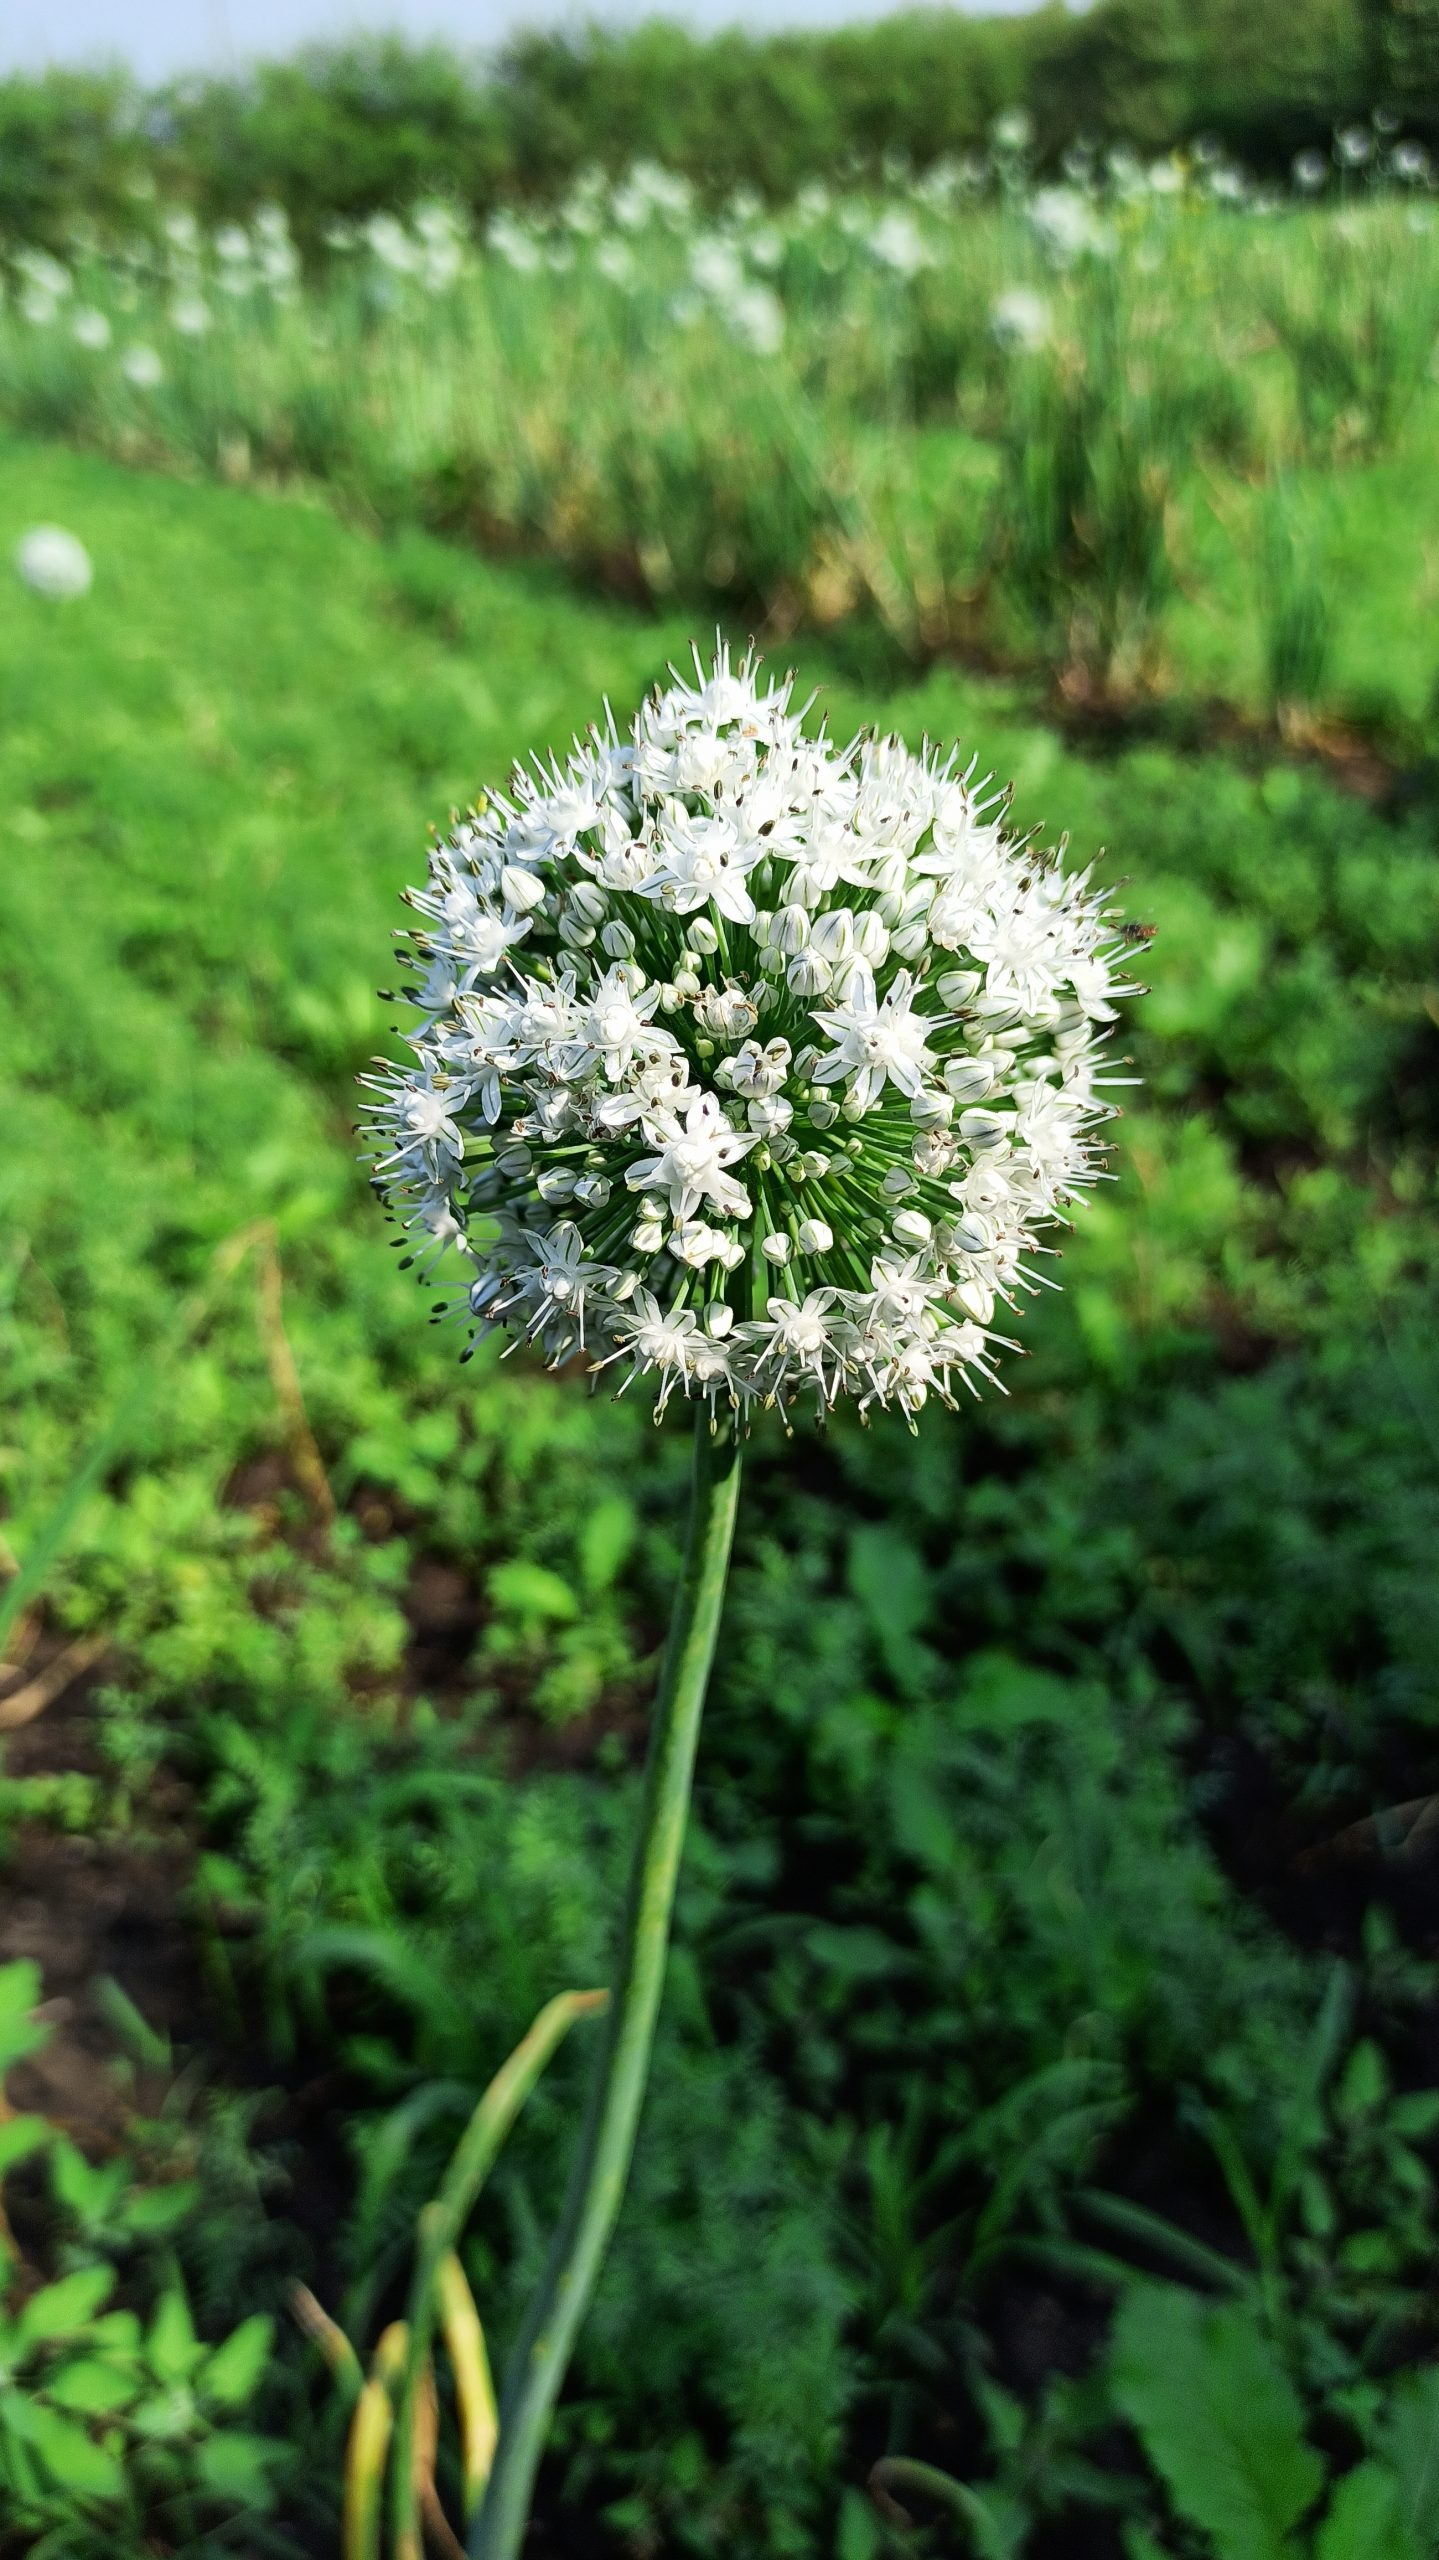 Flower of an onion plant